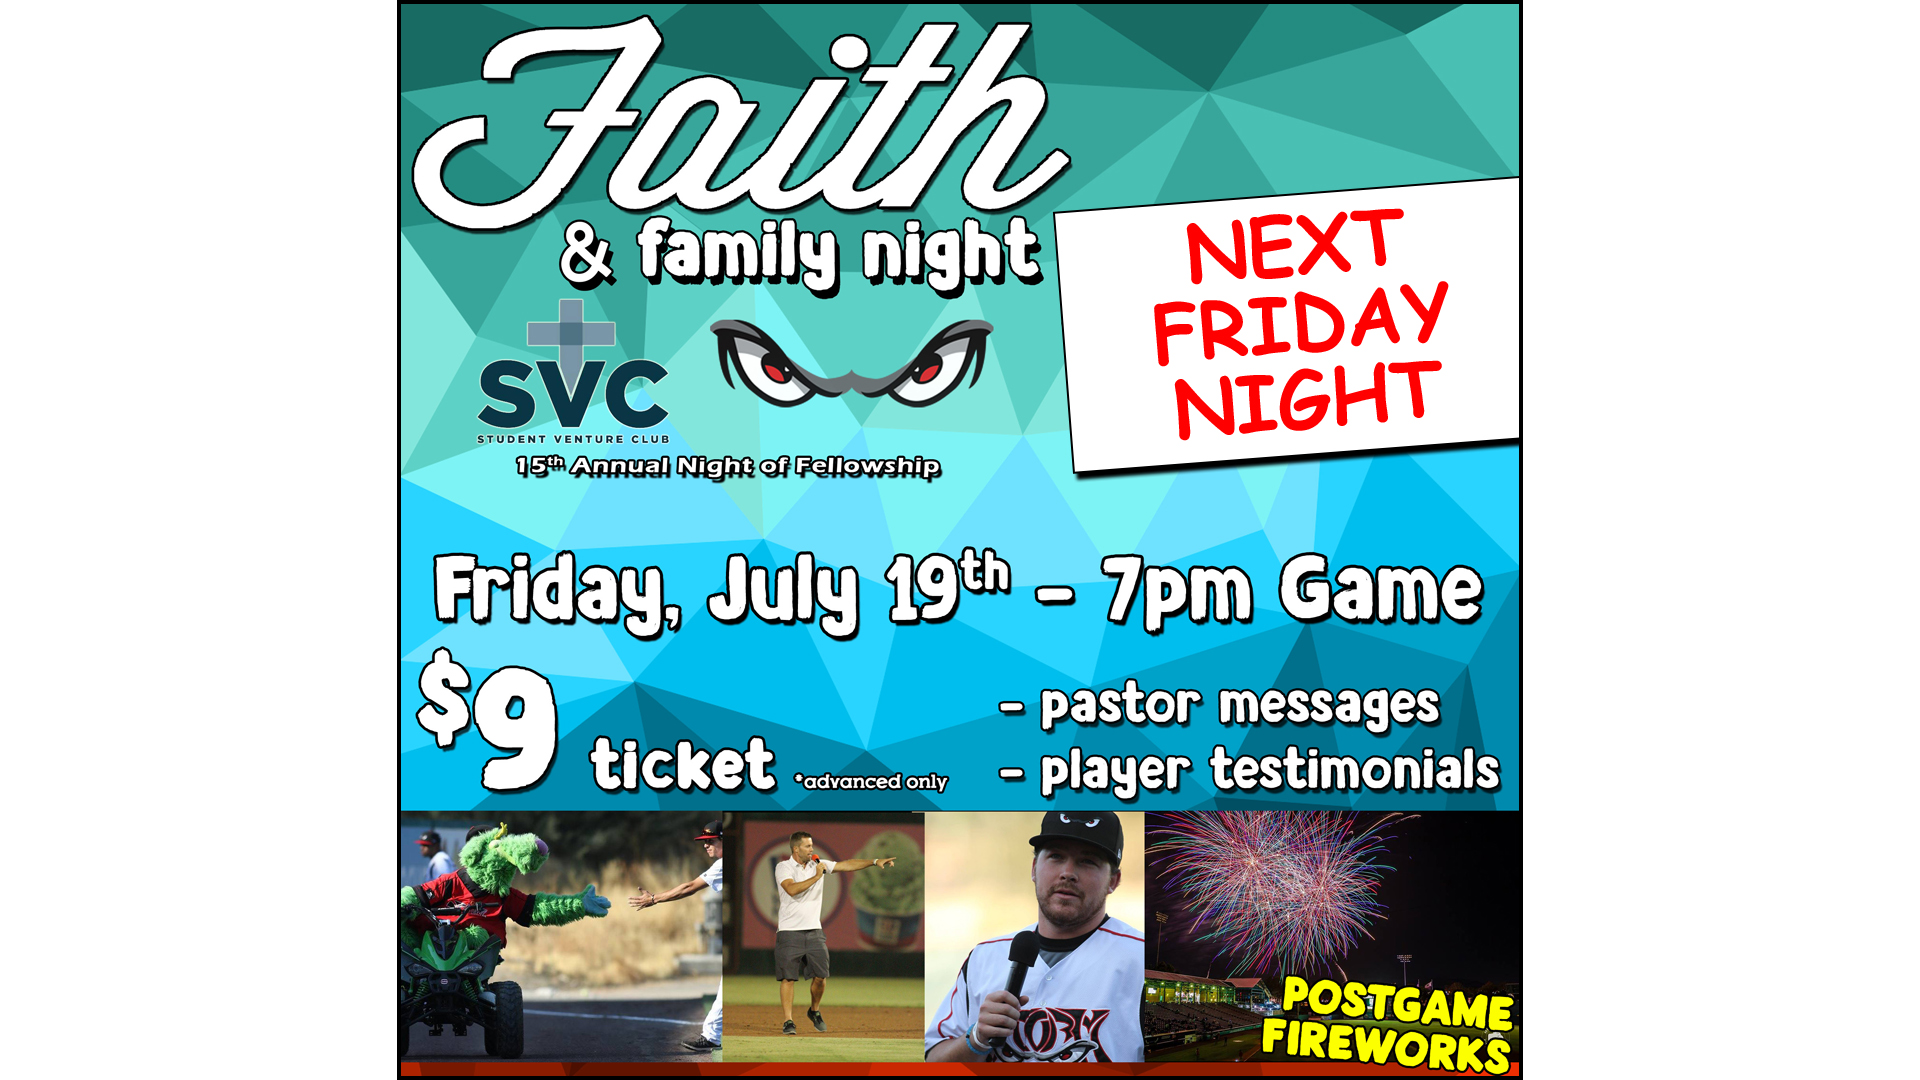 FaithAndFamilyNight19.jpg